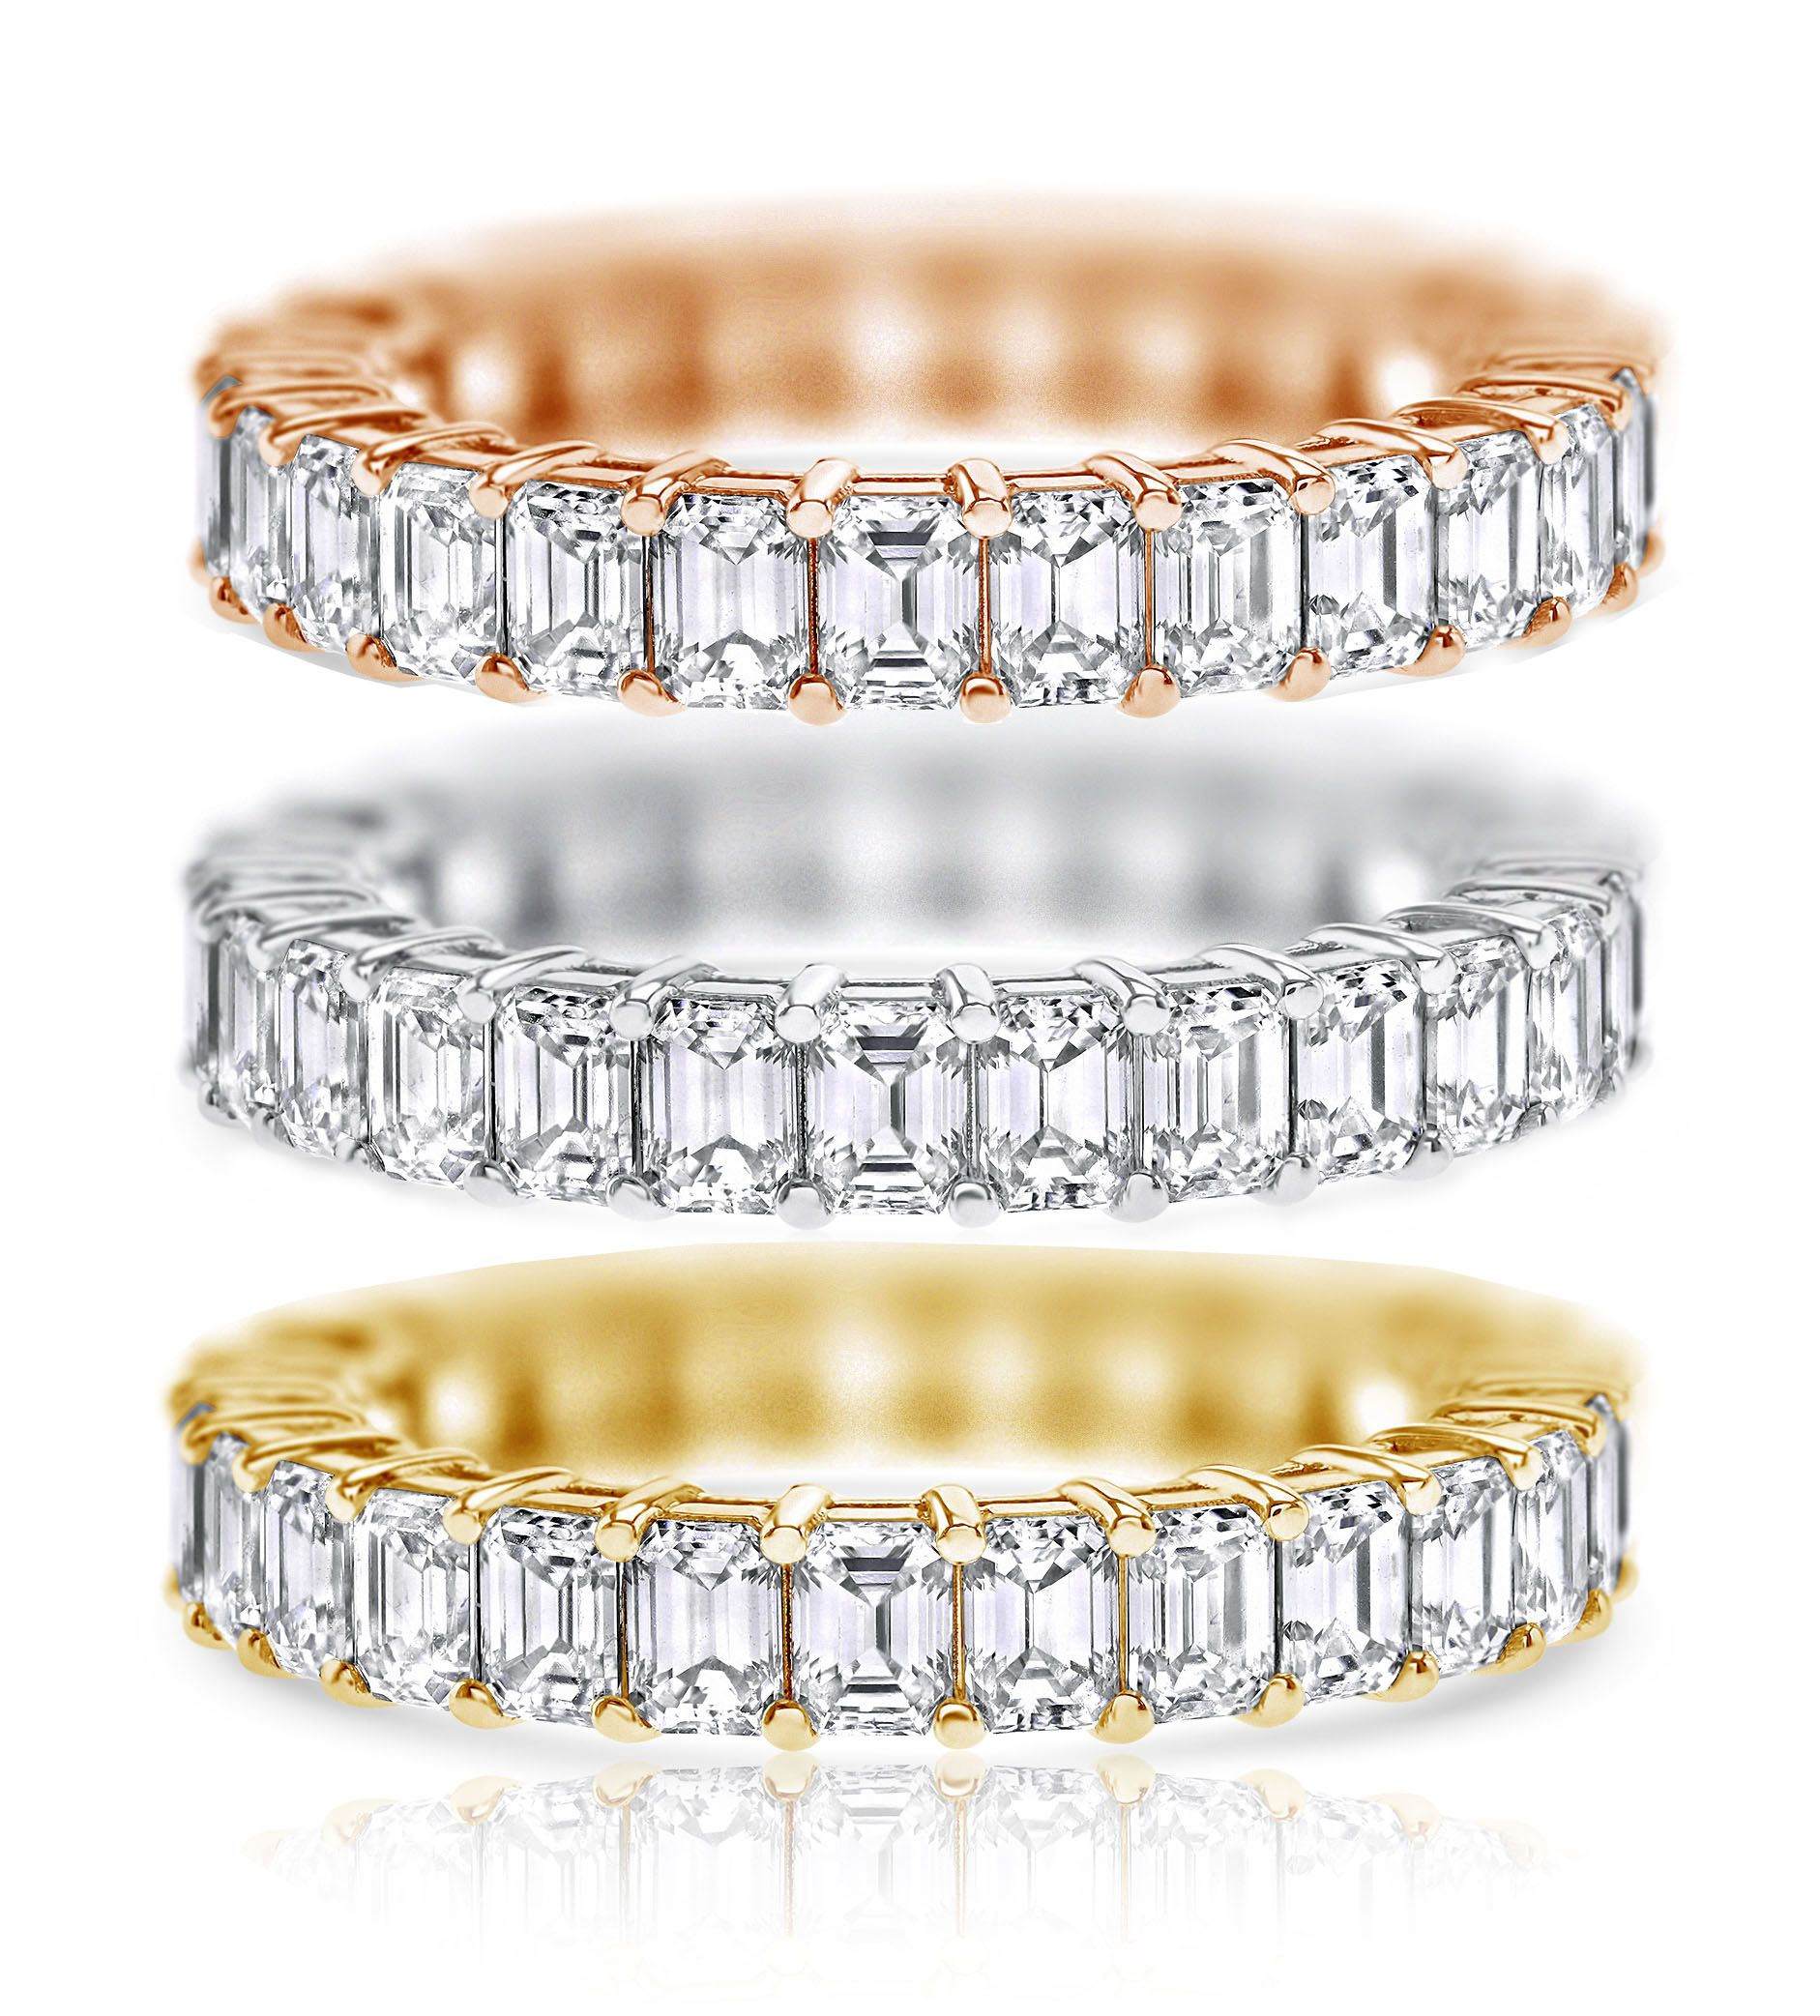 3.63 ct Emerald cut Eternity Ring, D-E-F color, VVS Clarity, 18K